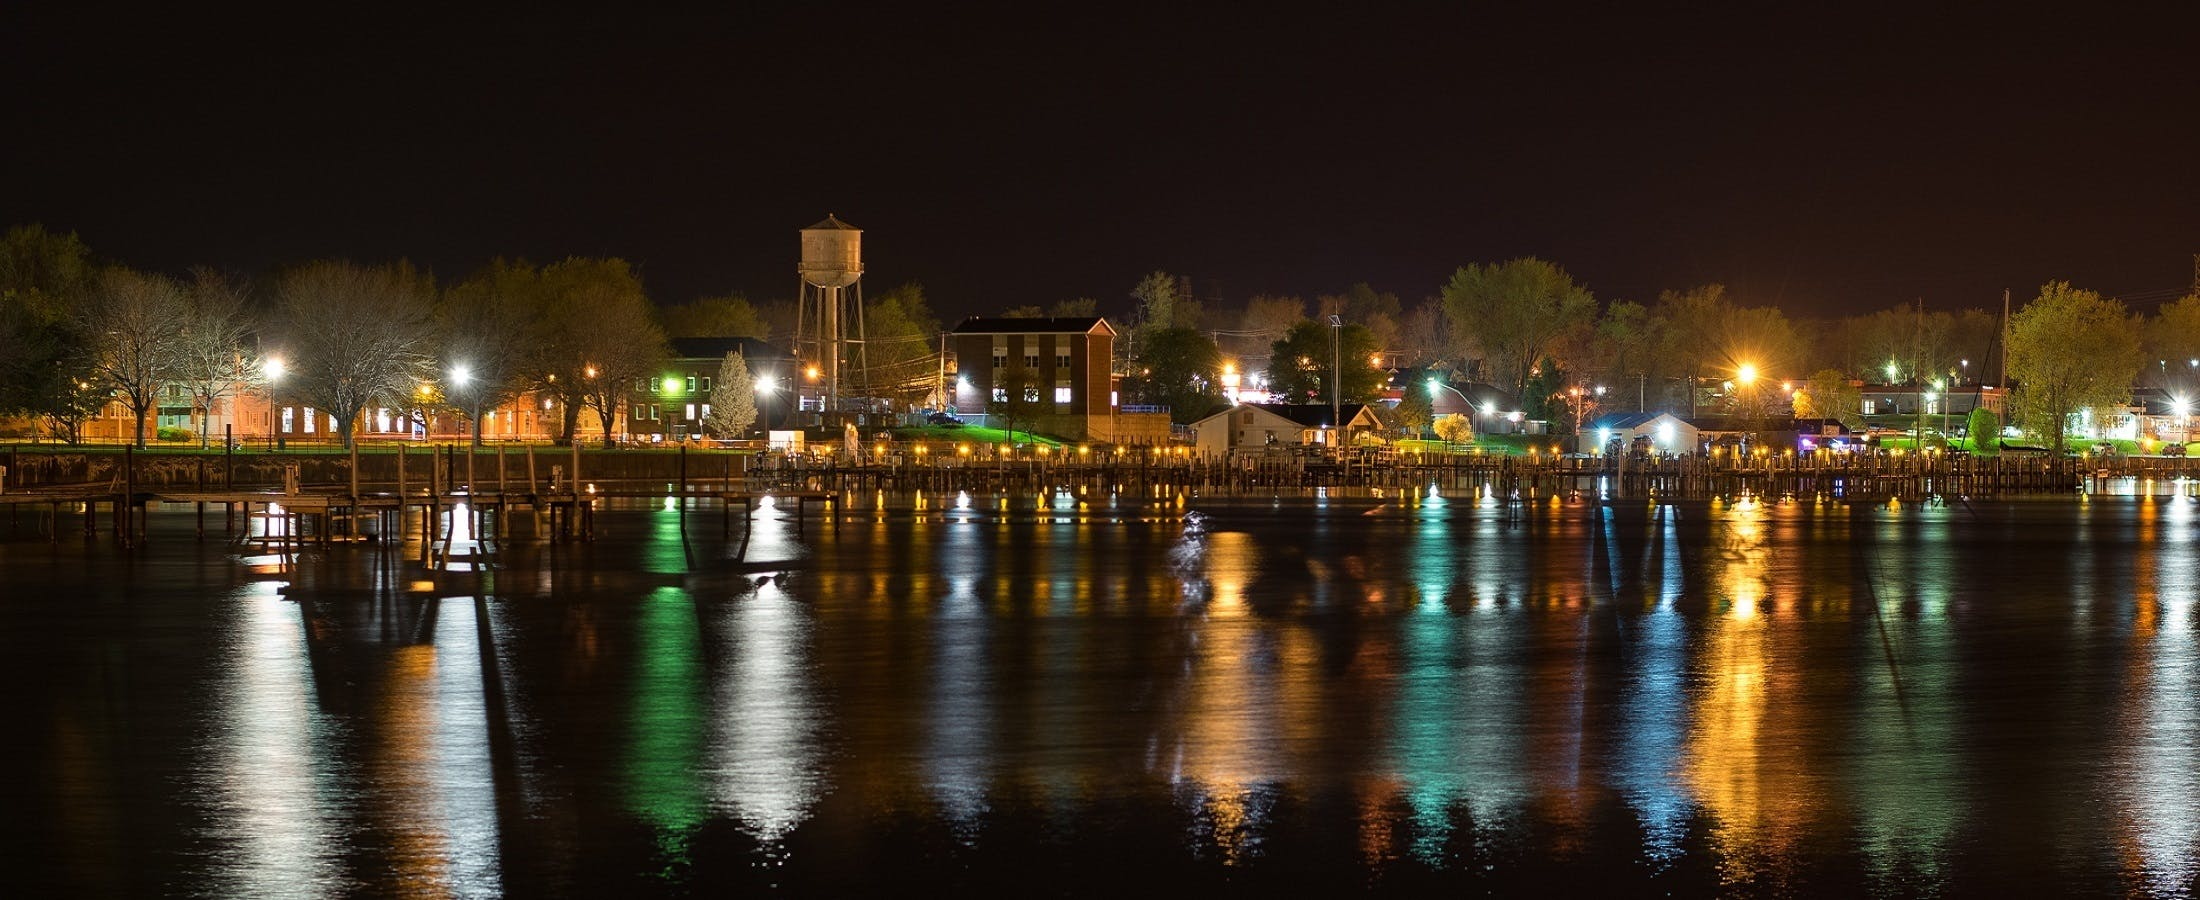 Landscape Photography of Town Near Body of Water during Nightime